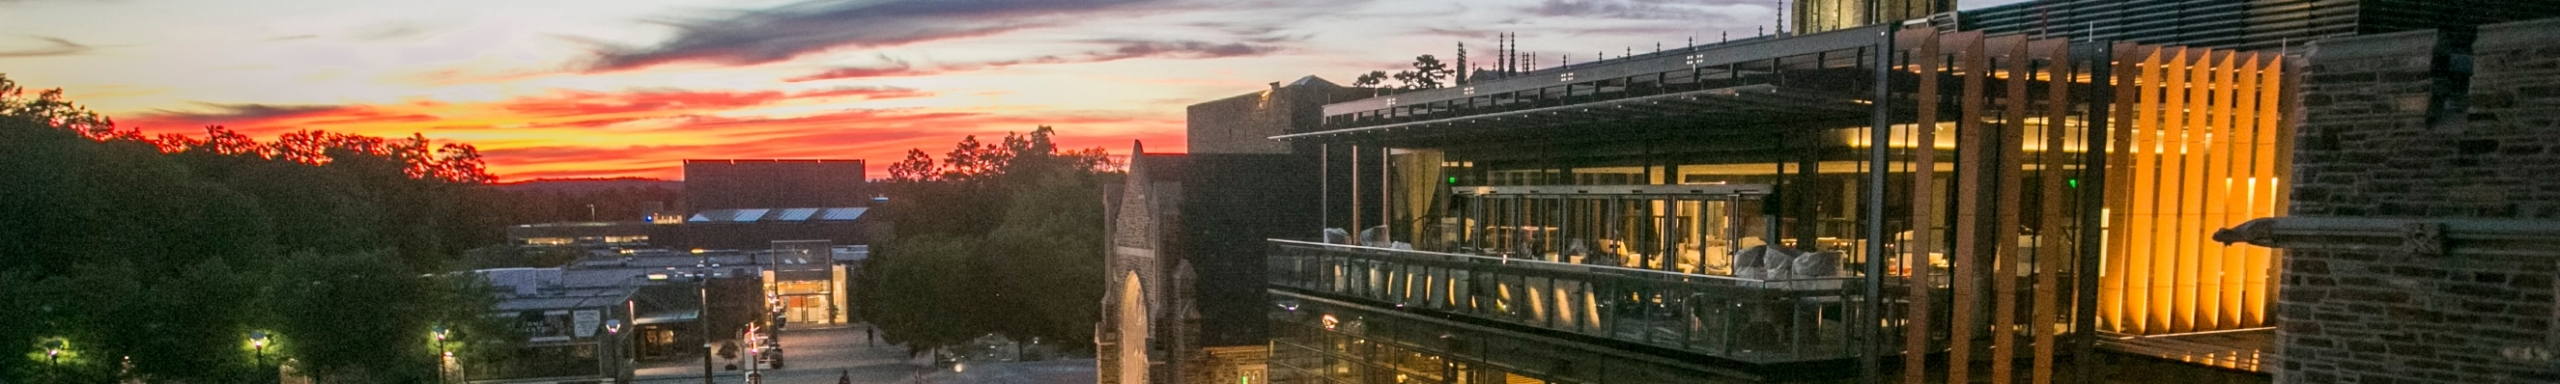 Duke University campus at twilight